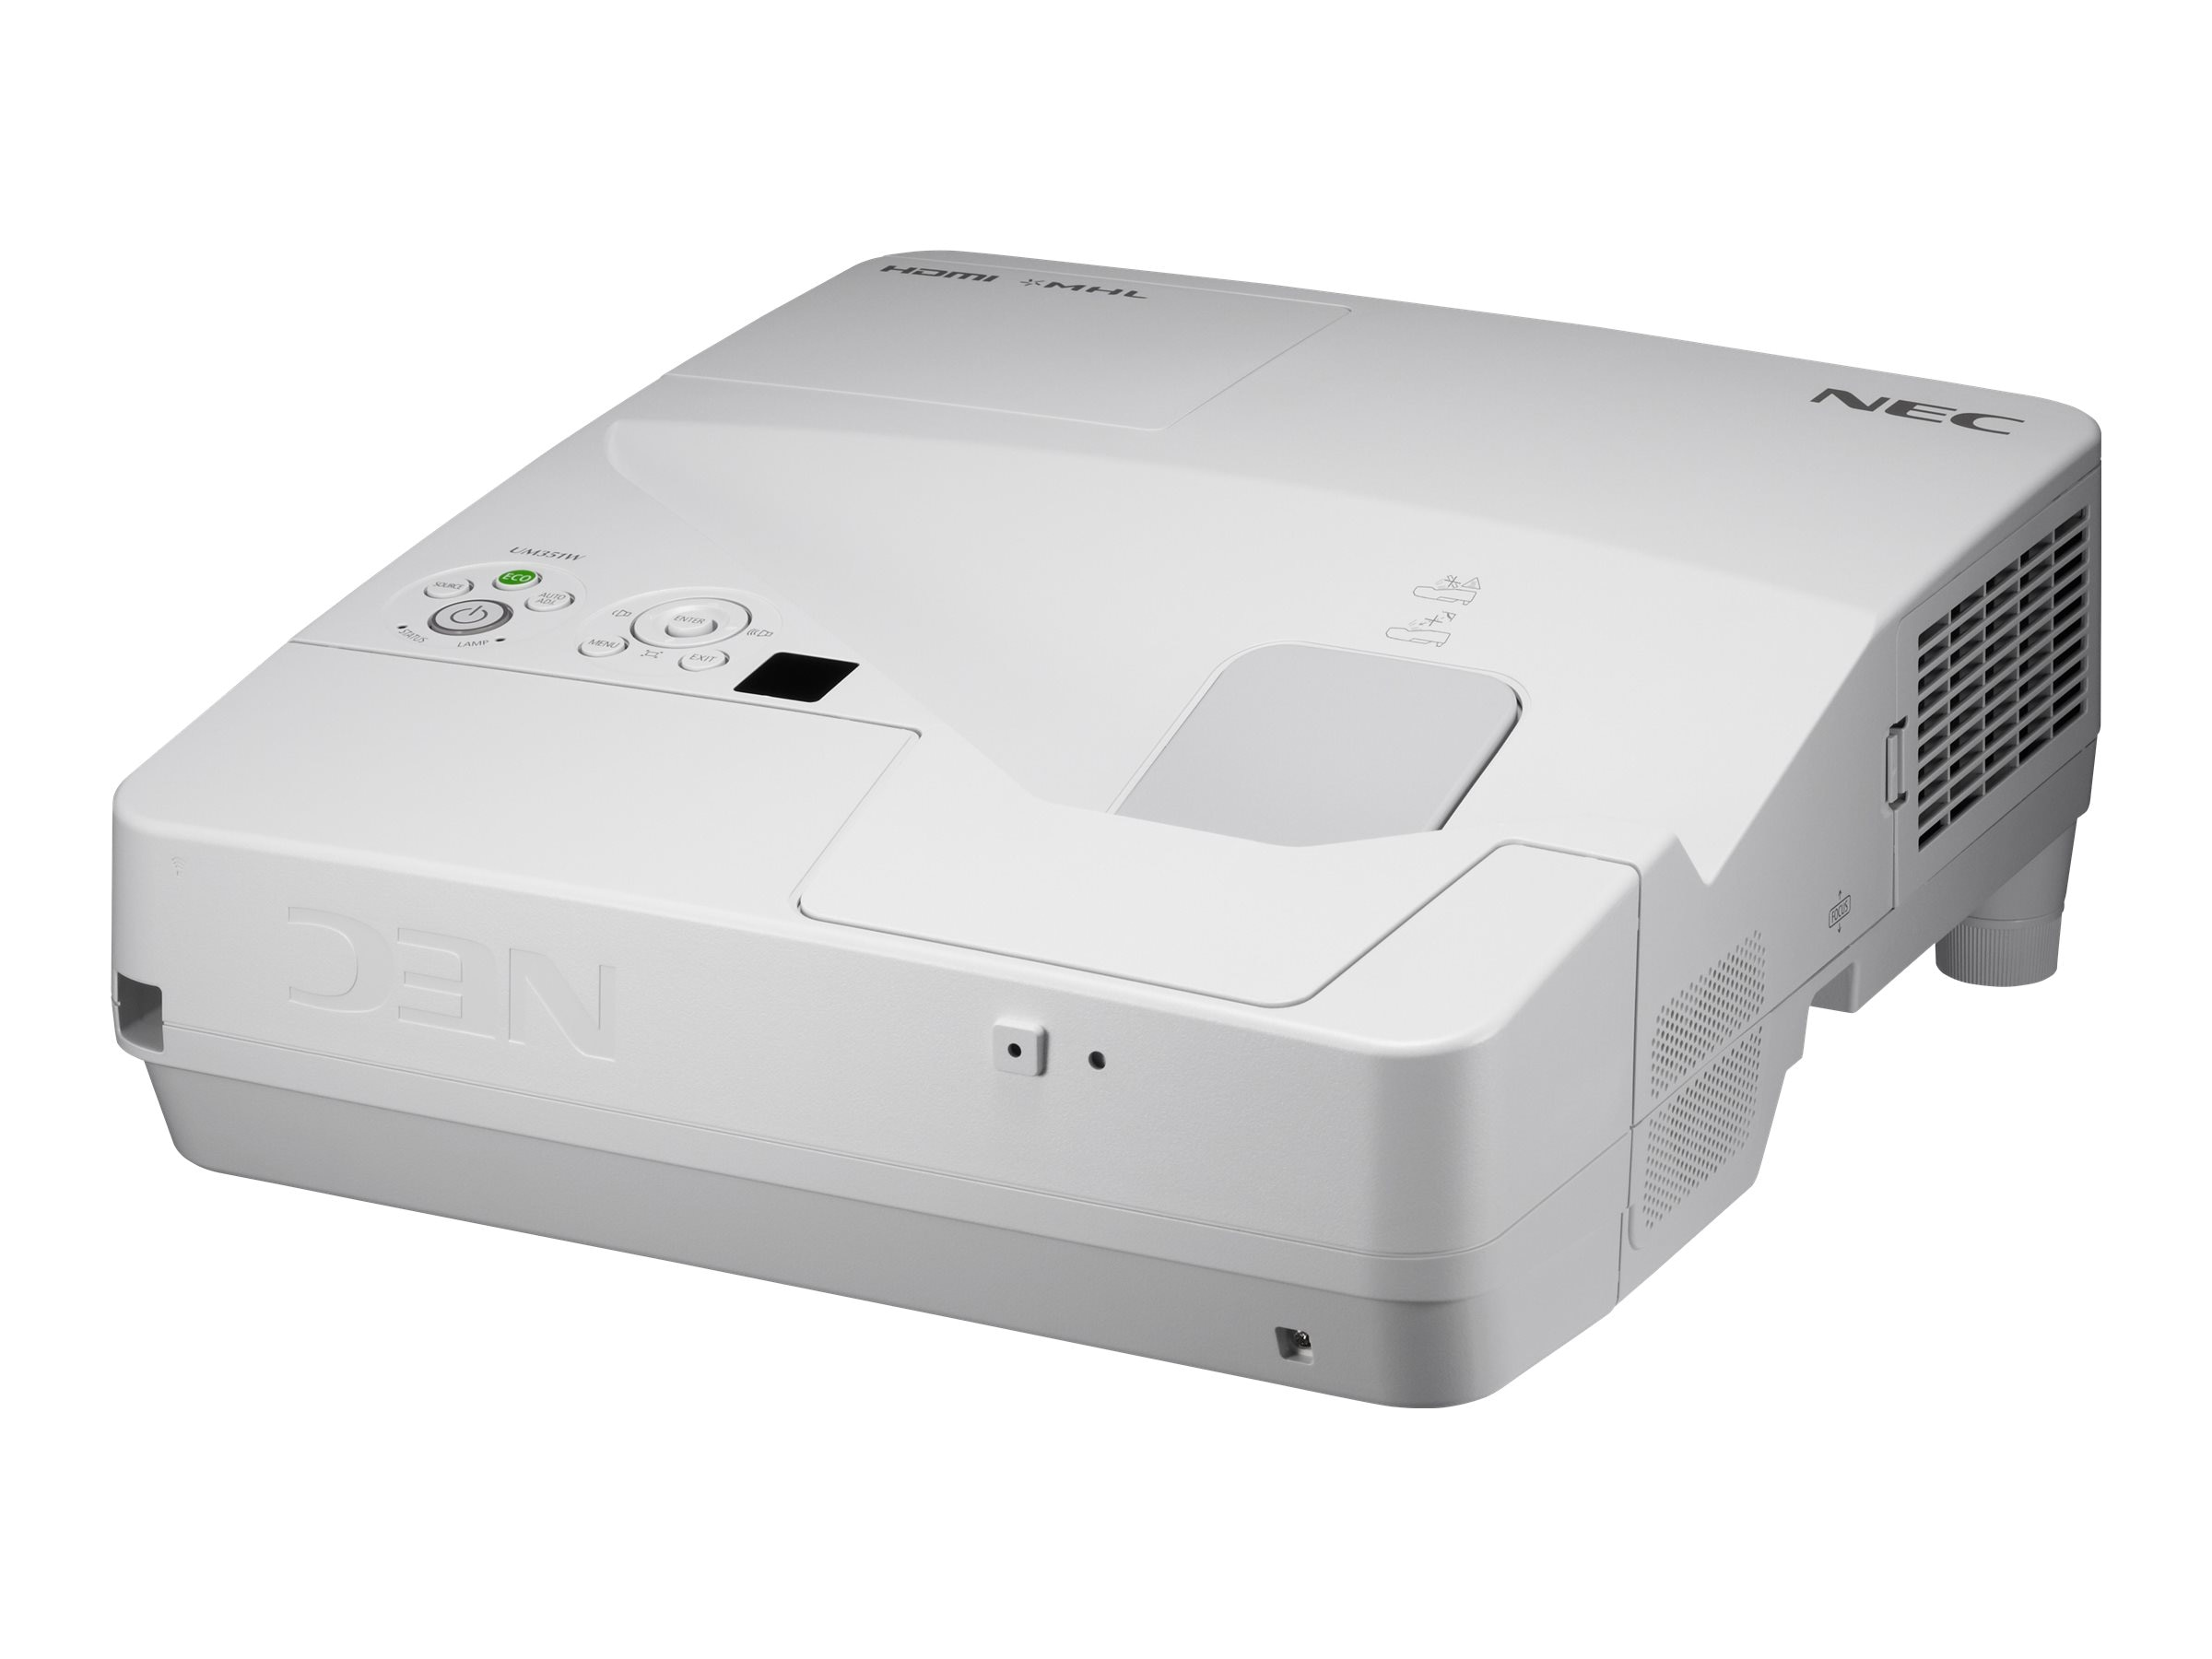 NEC UM351W Ultra Short Throw LCD Projector, 3500 Lumens, White, NP-UM351W